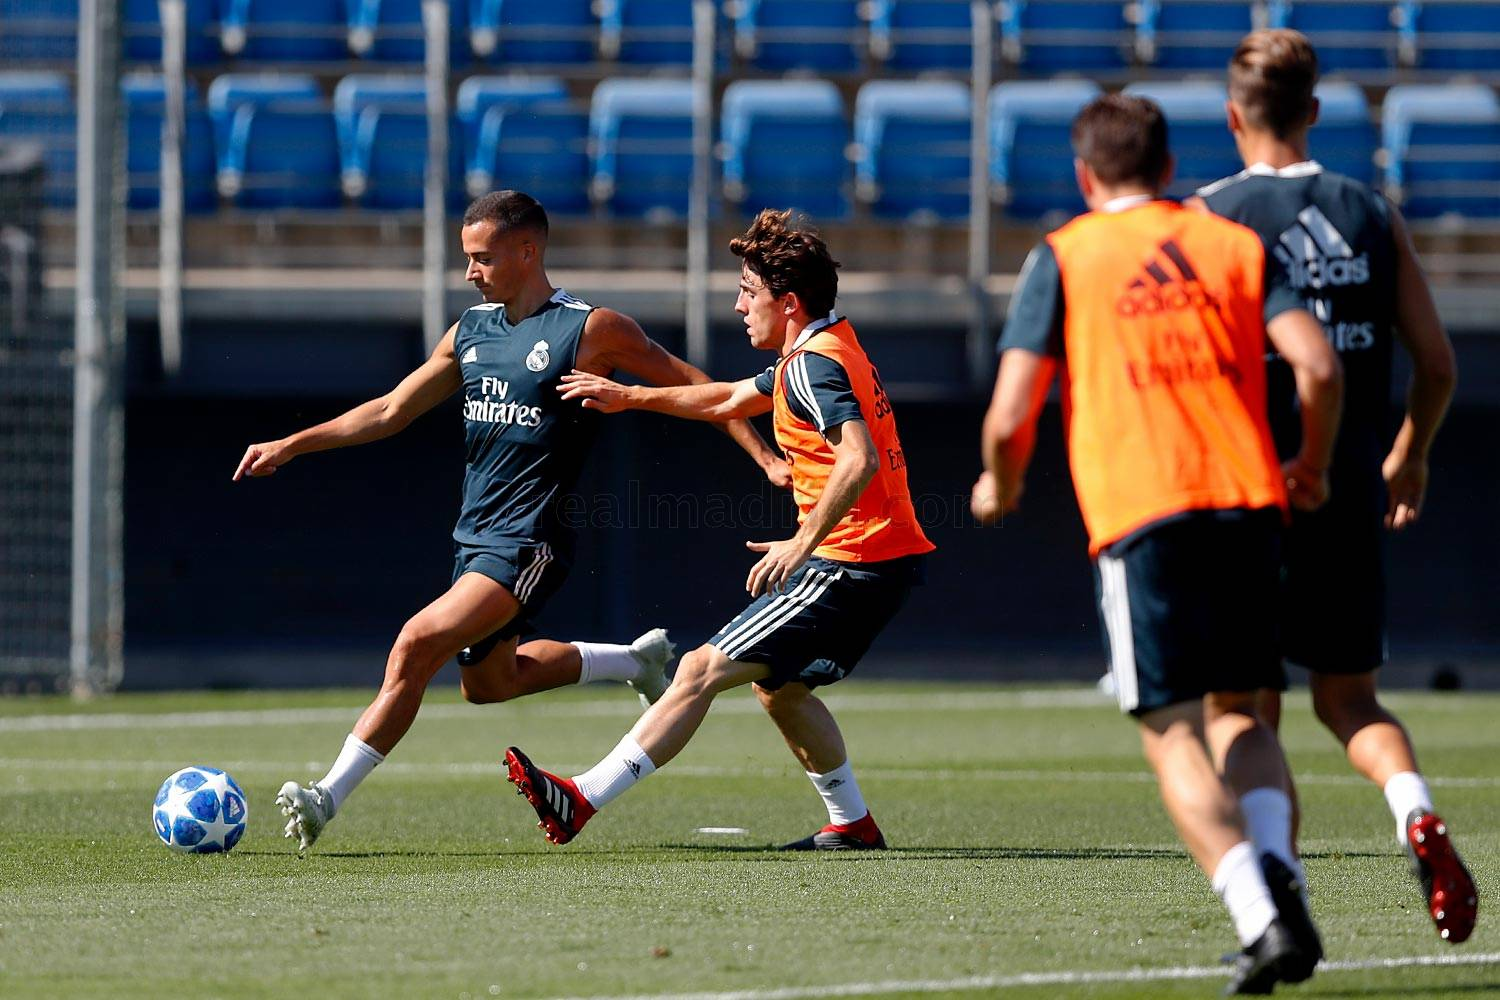 Real Madrid - Entrenamiento del Real Madrid - 17-09-2018